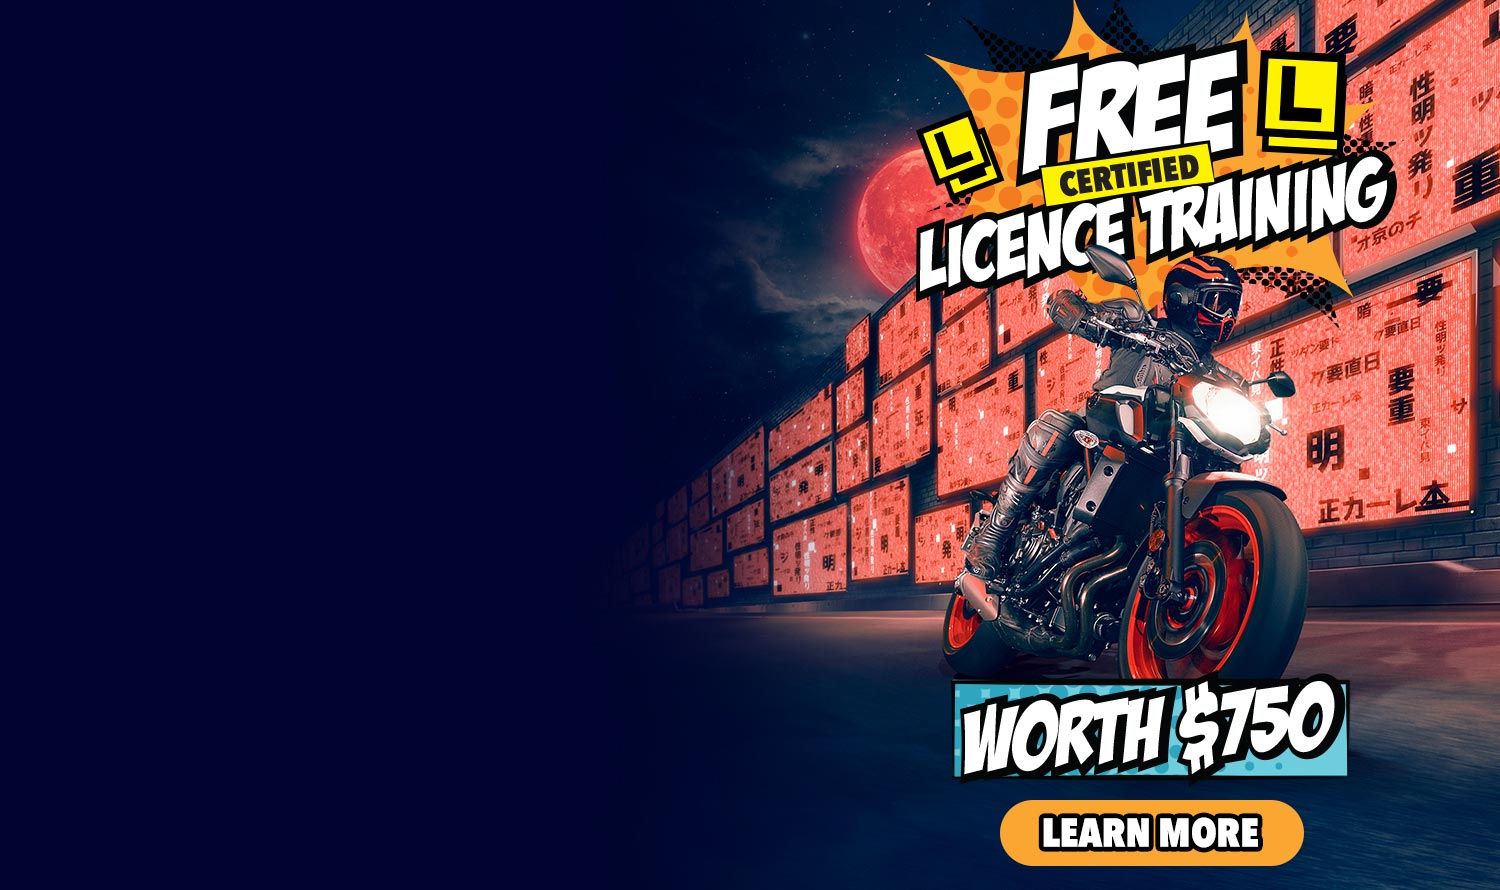 New & Used Motorcycles Australia | TeamMoto QLD, NSW & VIC